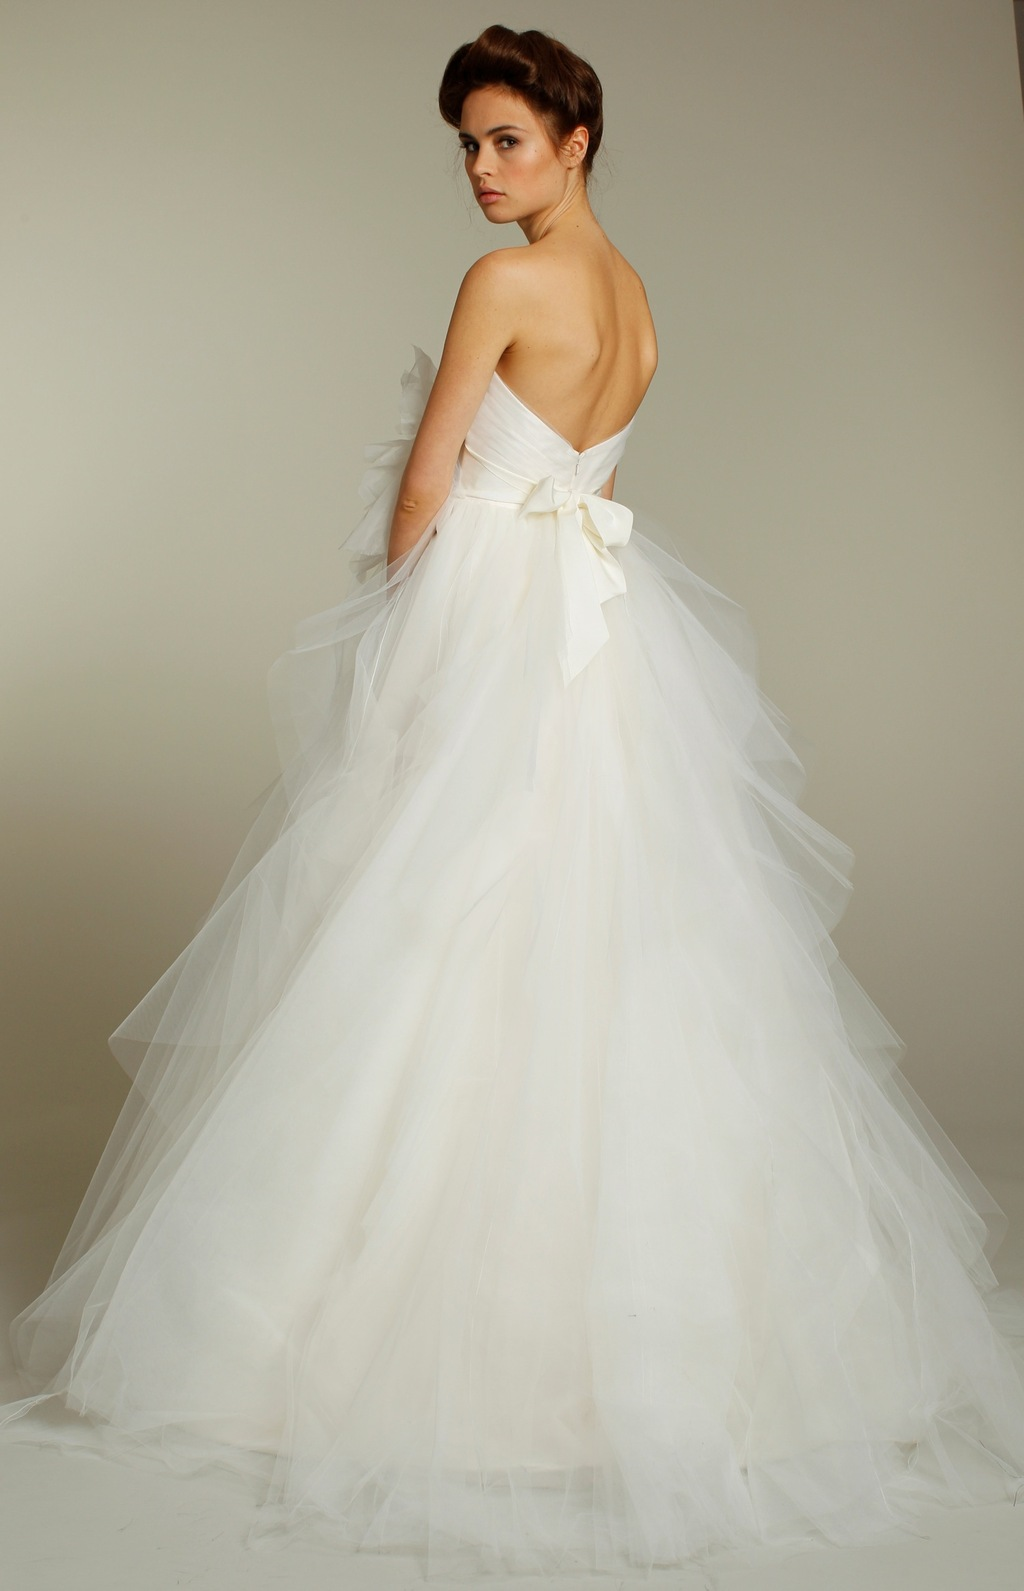 1156-blush-wedding-dress-2011-bridal-gowns-tulle-ballgown-strapless-back.full